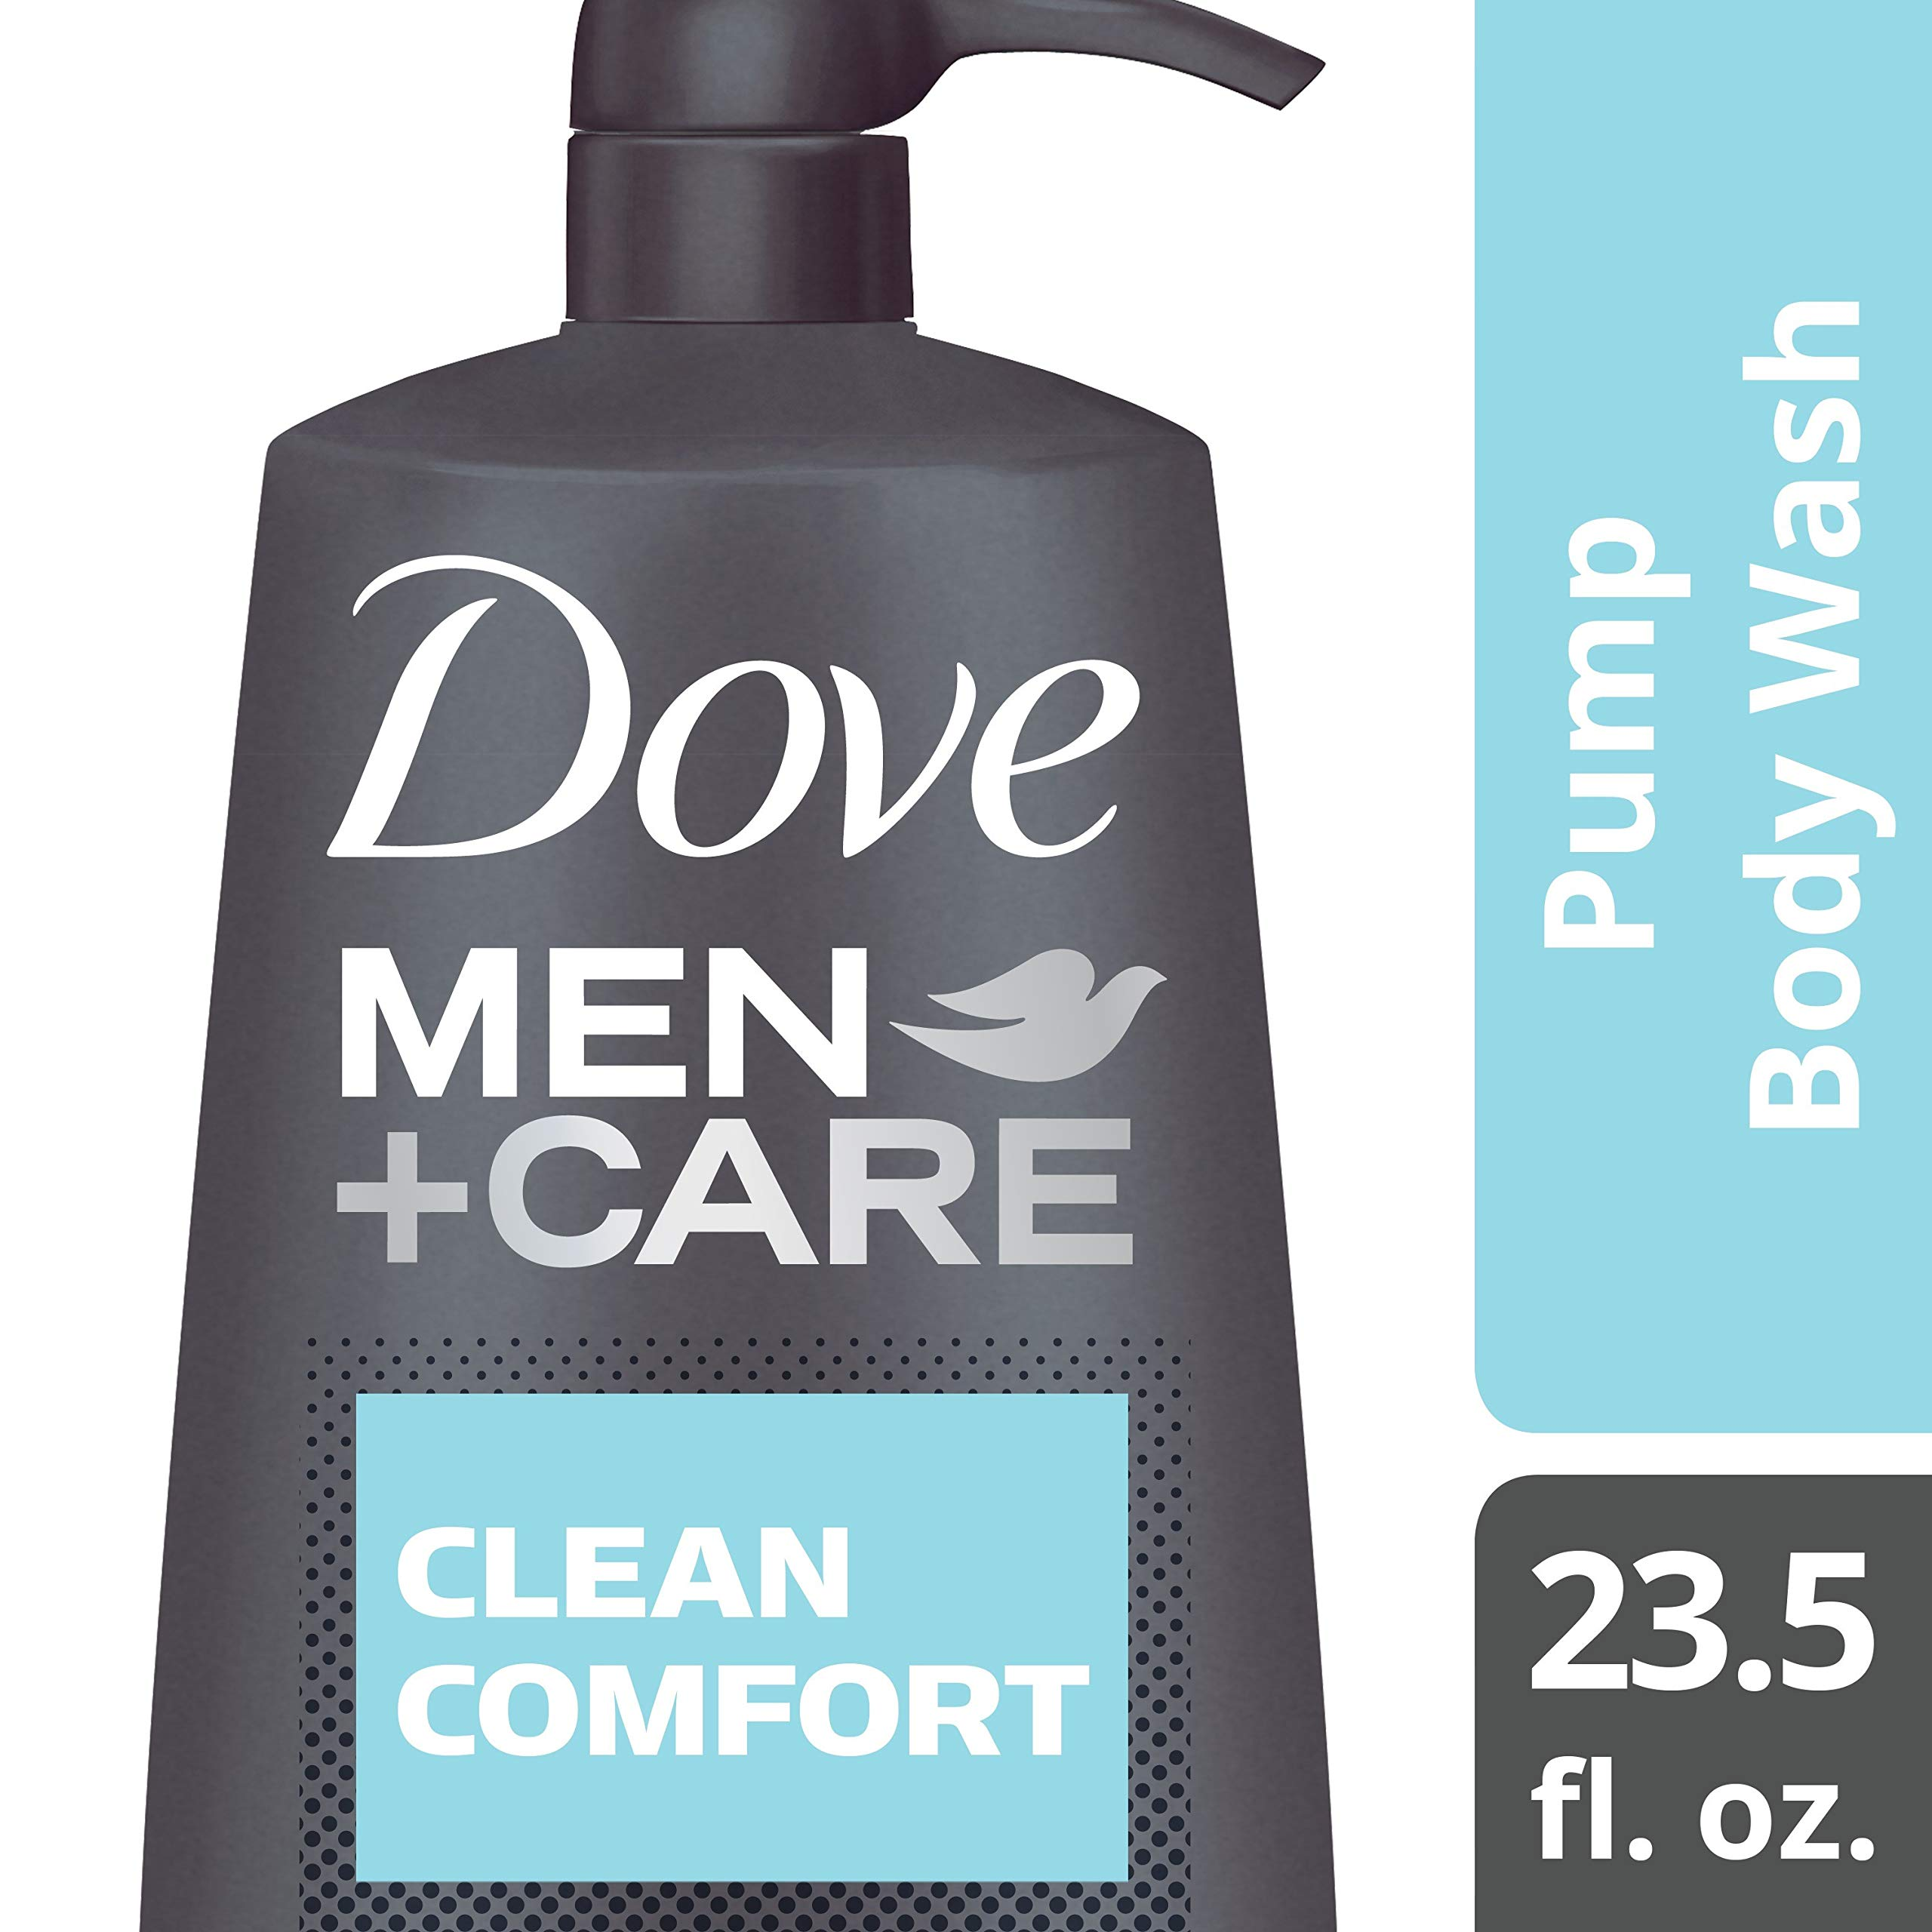 Dove Men+Care Body Wash Pump, Clean Comfort, 23.5 Ounce (Pack of 4) by DMC BAR BODY WASH